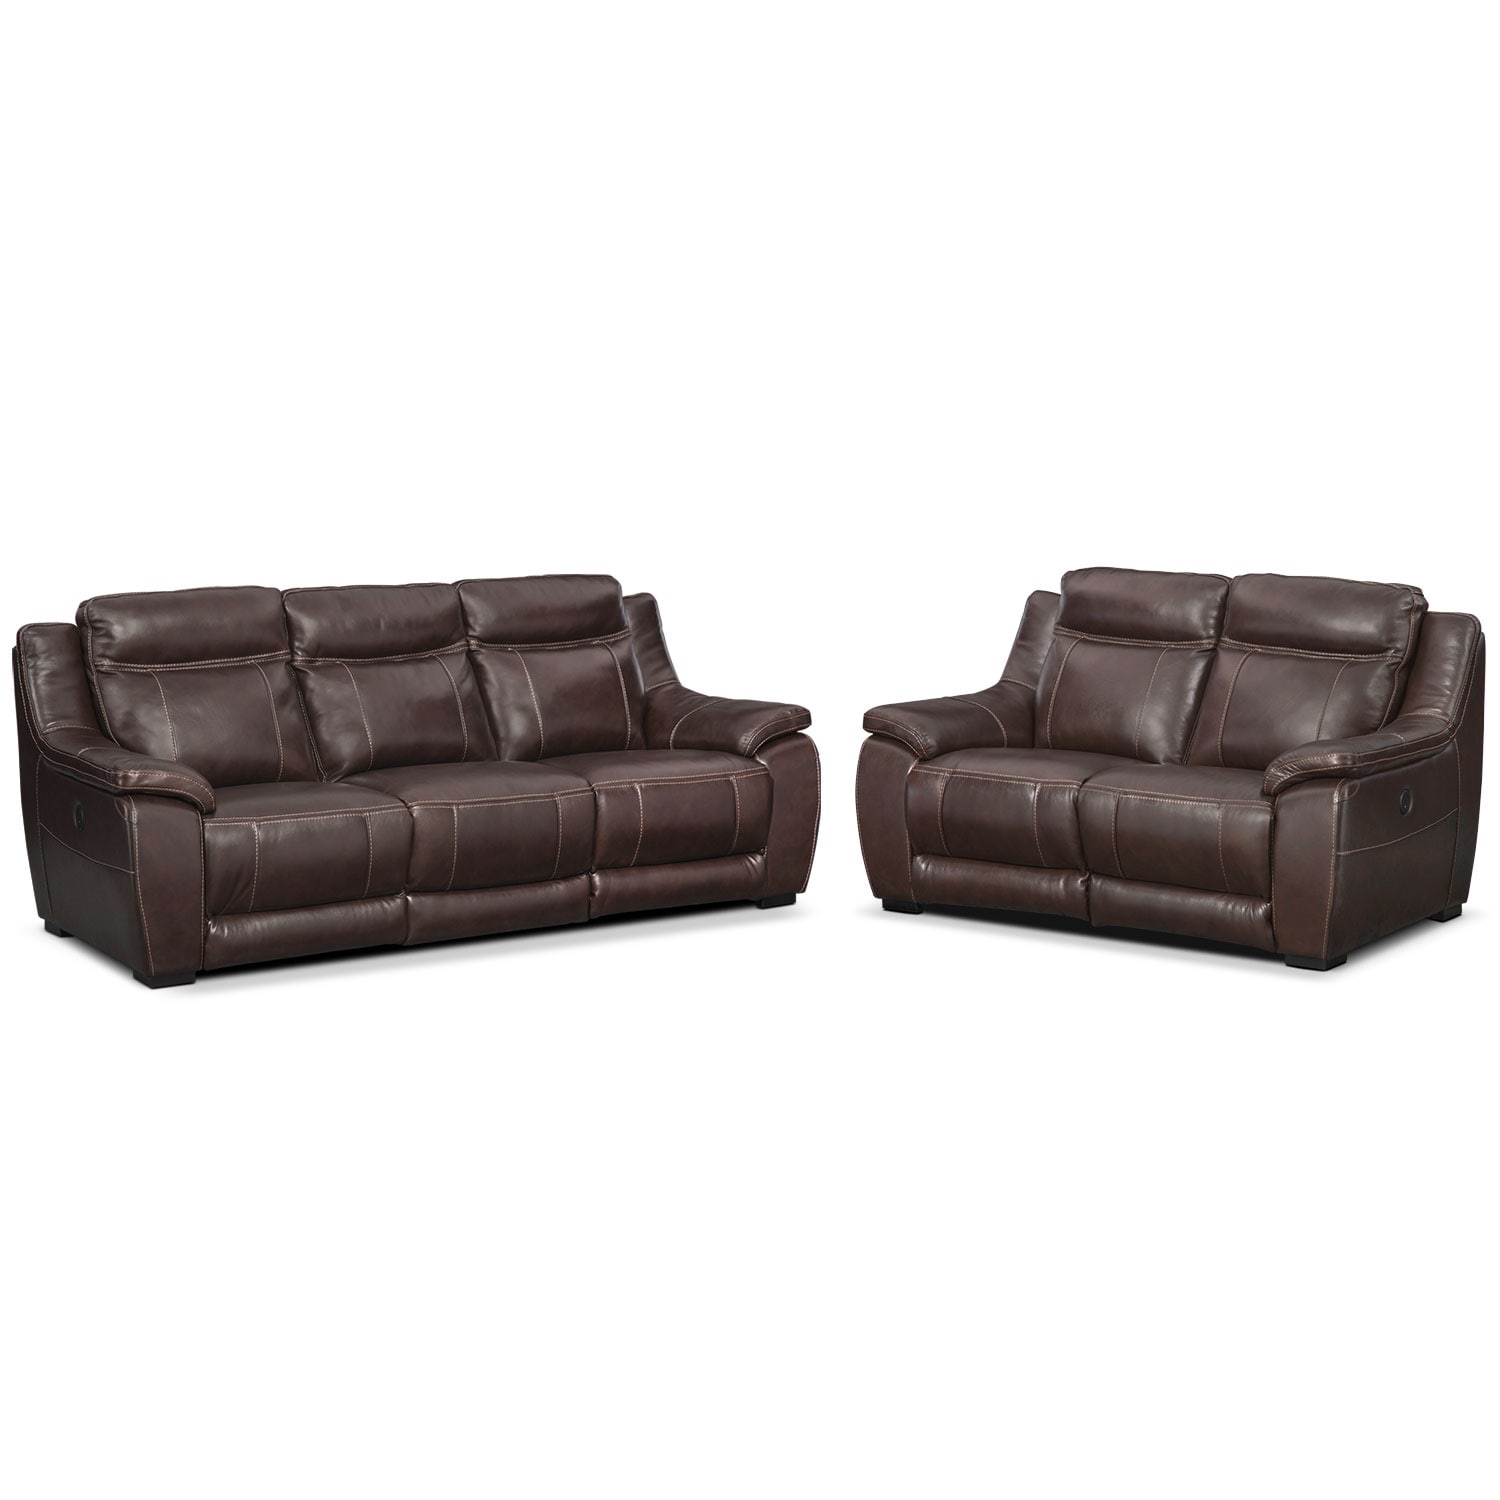 Living Room Furniture - Lido Brown 2 Pc. Power Reclining Living Room